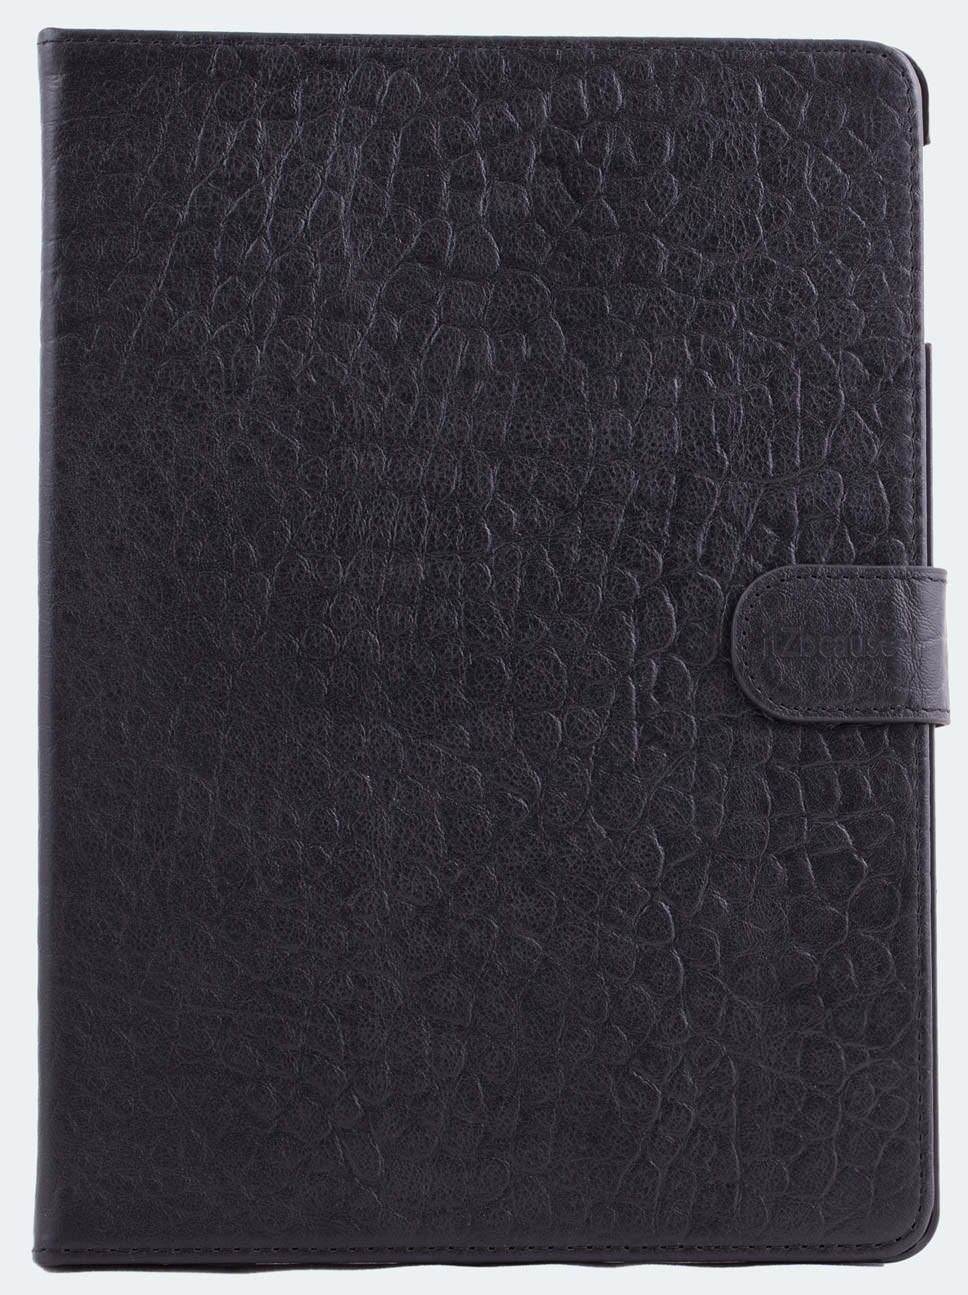 Cookbook Black Cover : Black rhino ipad air book cover itzbcause